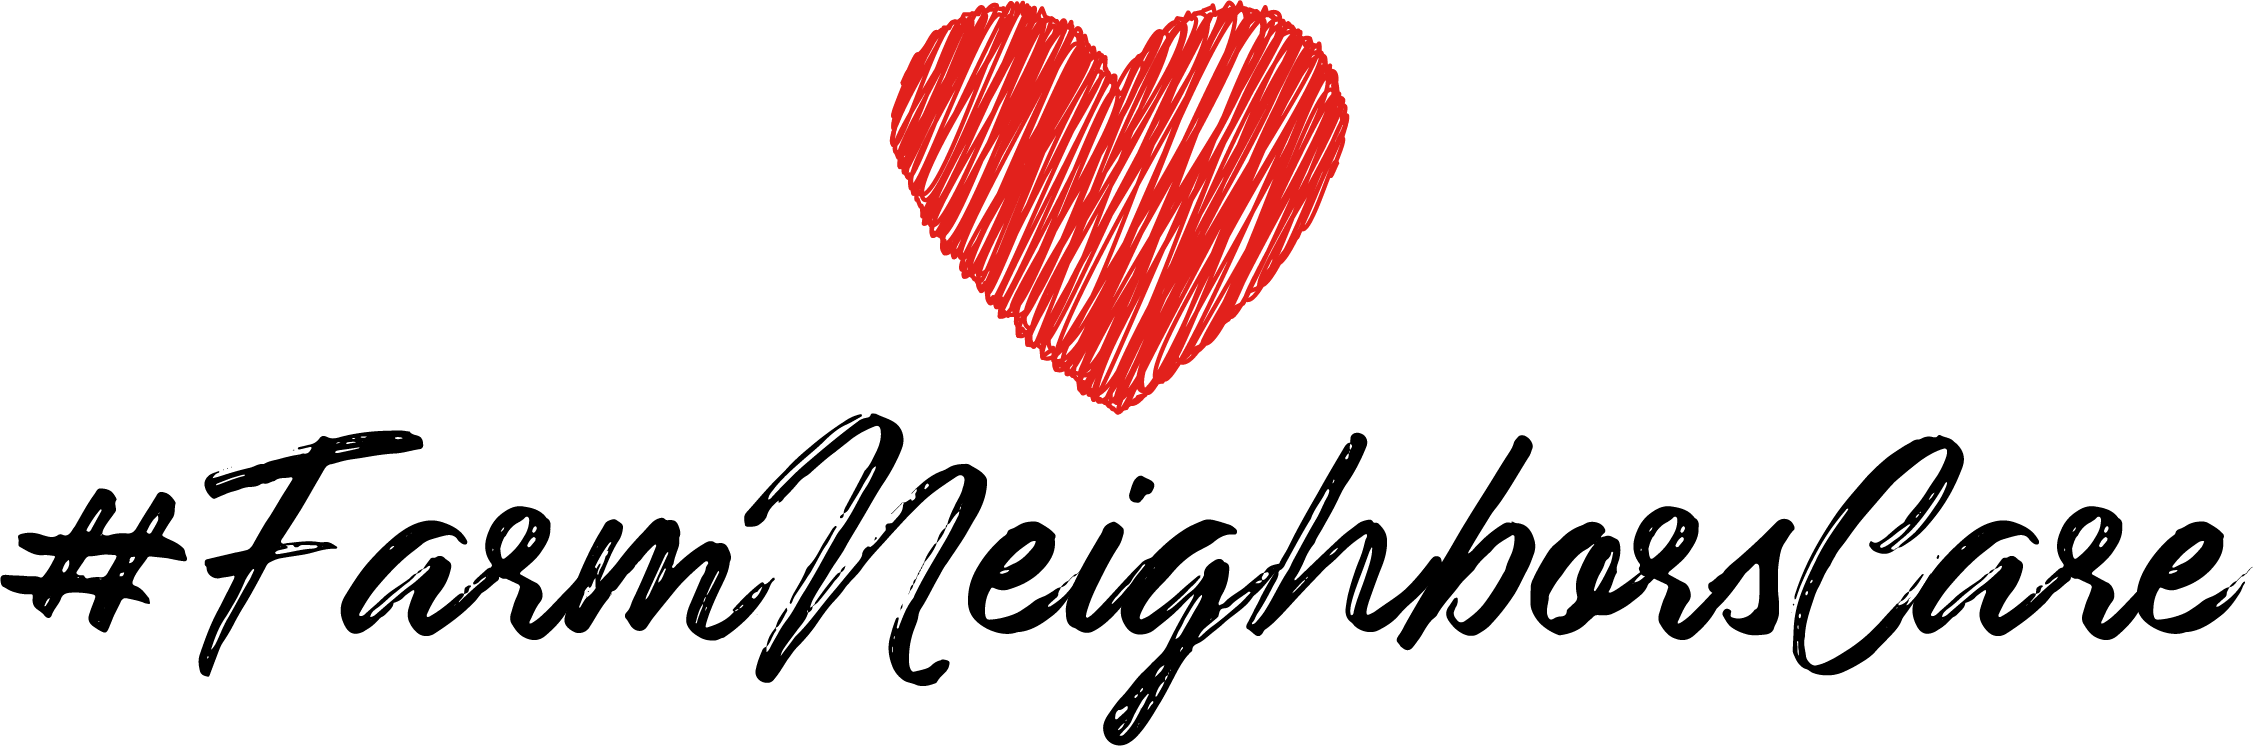 #farmneighborscare with a drawn heart